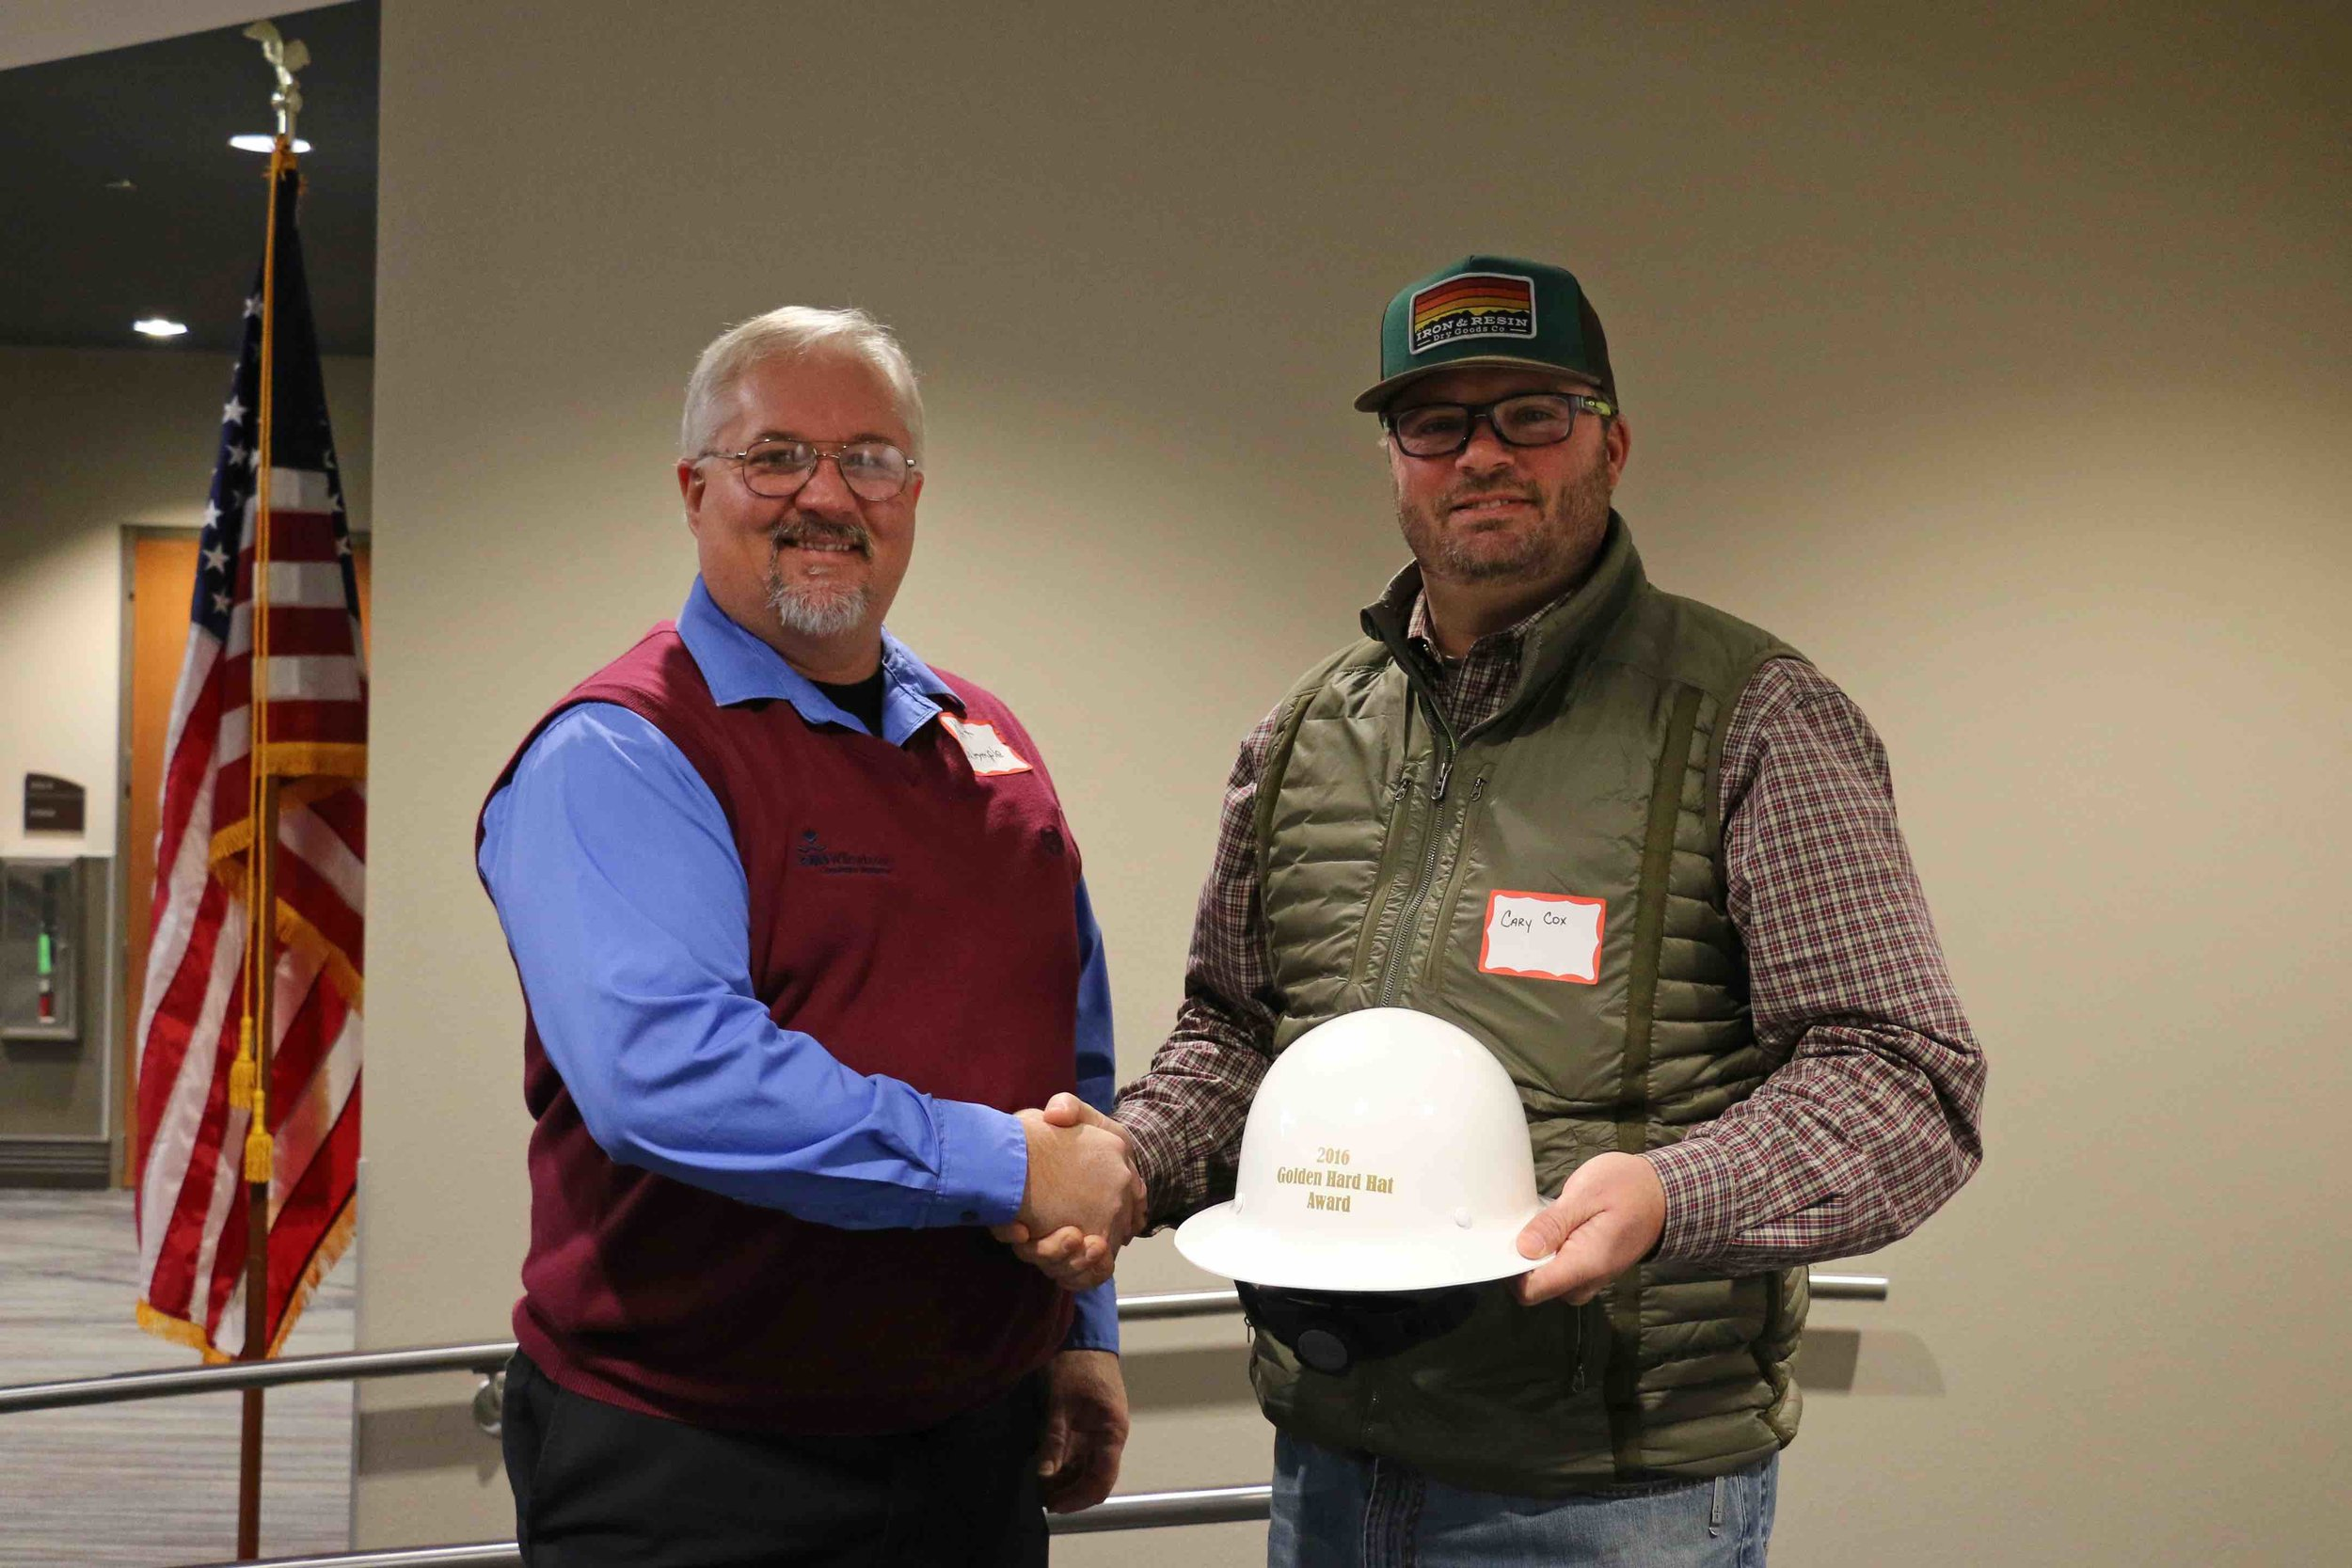 2016 Overall Golden Hard Hat Safety Award Winner, Cary Cox